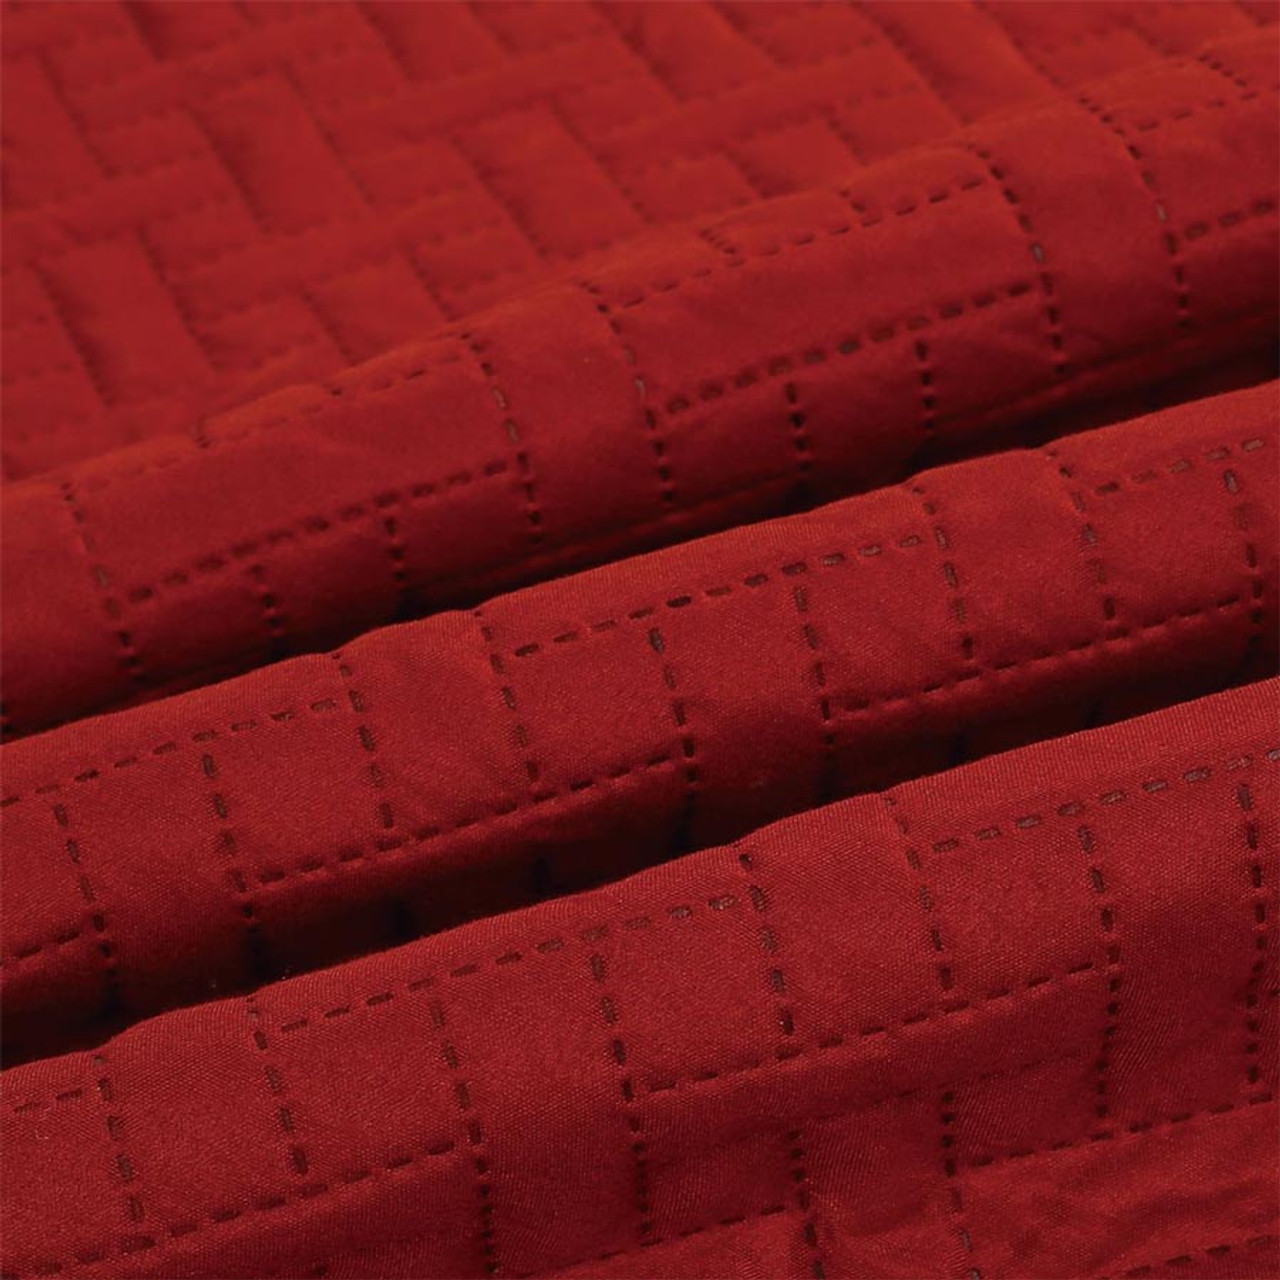 3 PC Squared Stitched Pinsonic Reversible Oversized Bedspread